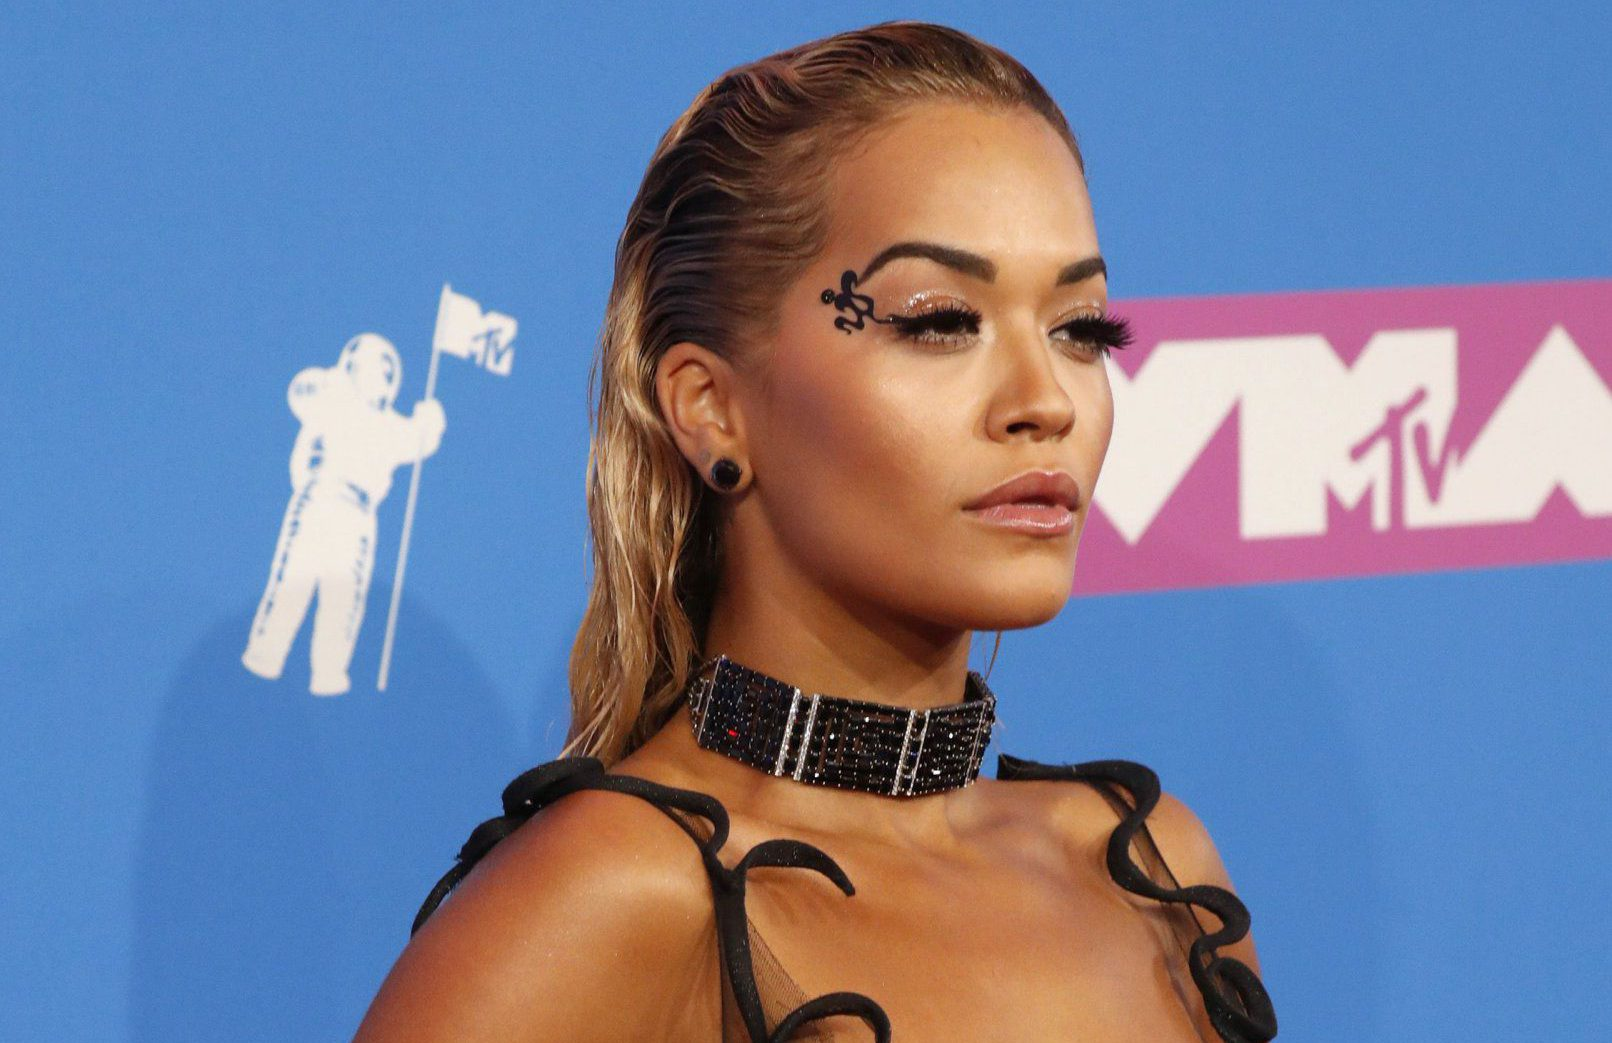 2018 MTV Video Music Awards - Arrivals - Radio City Music Hall, New York, U.S., August 20, 2018. - Rita Ora. REUTERS/Andrew Kelly TEMPLATE OUT.